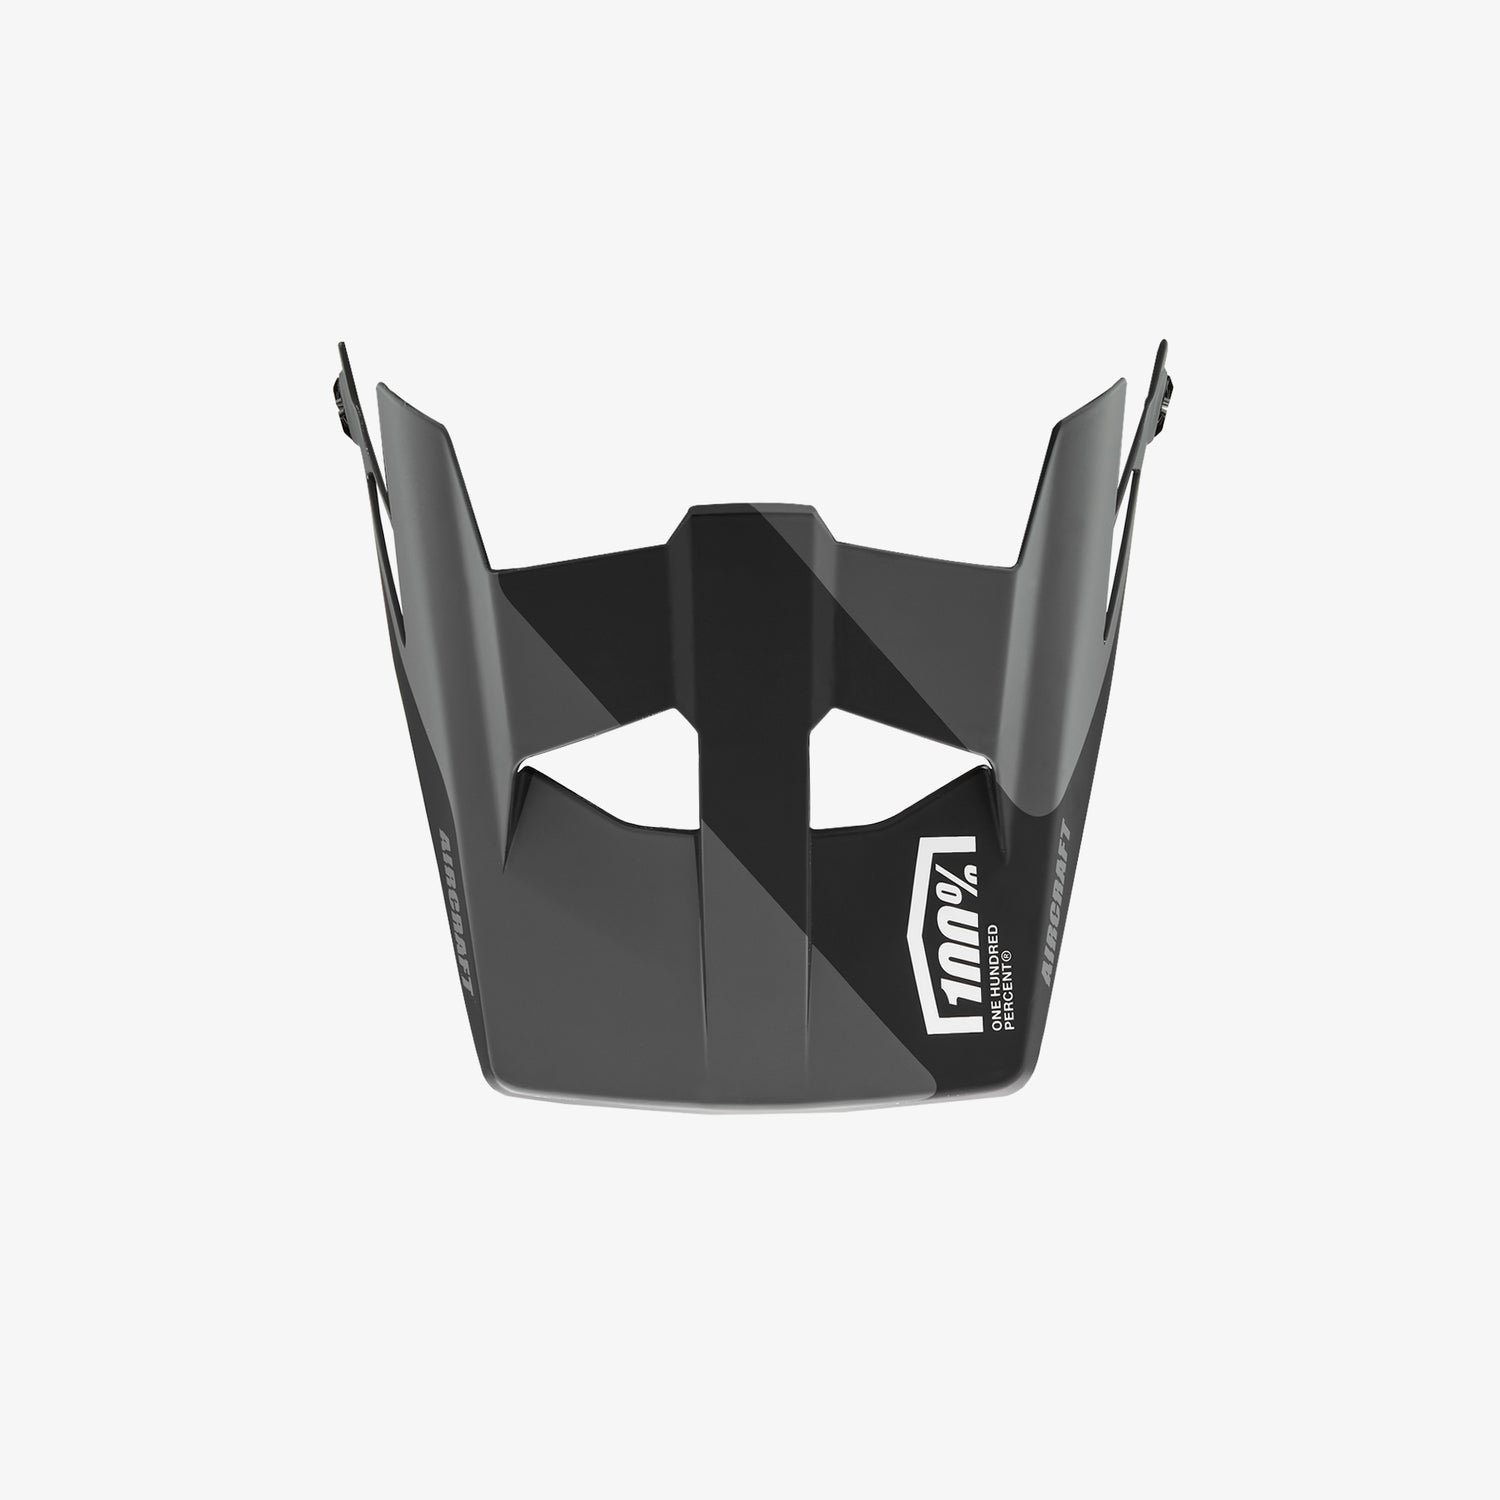 AIRCRAFT Replacement Visor - LTD Black